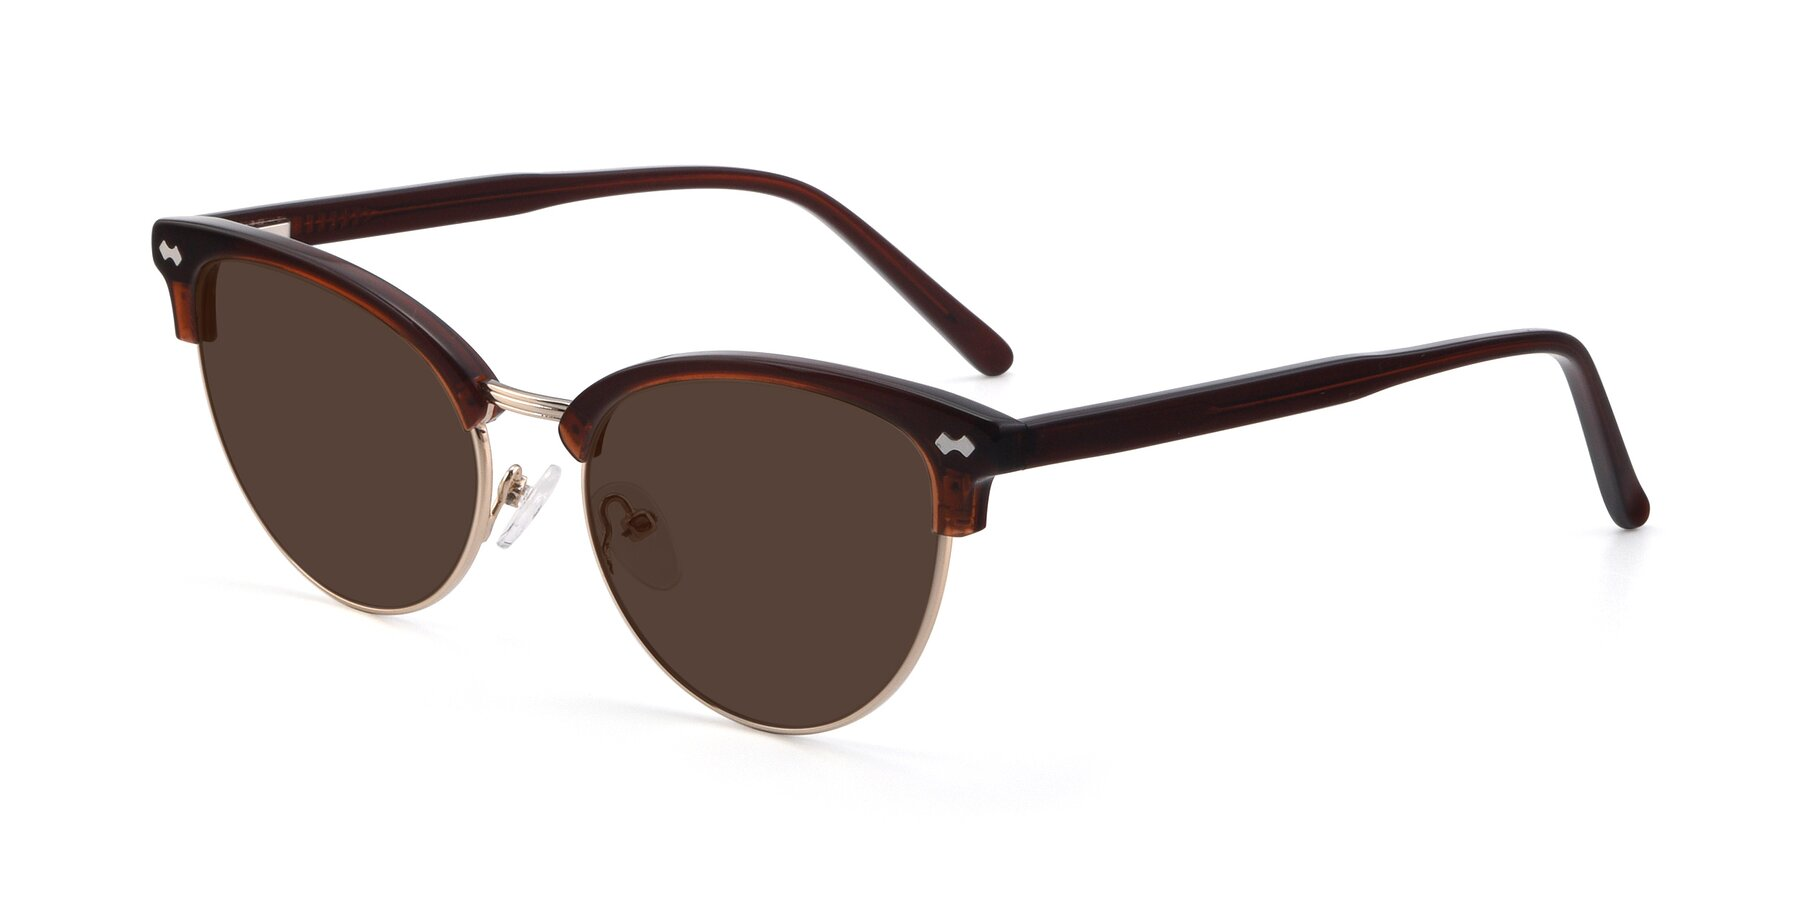 Angle of 17461 in Tortoise-Black with Brown Tinted Lenses